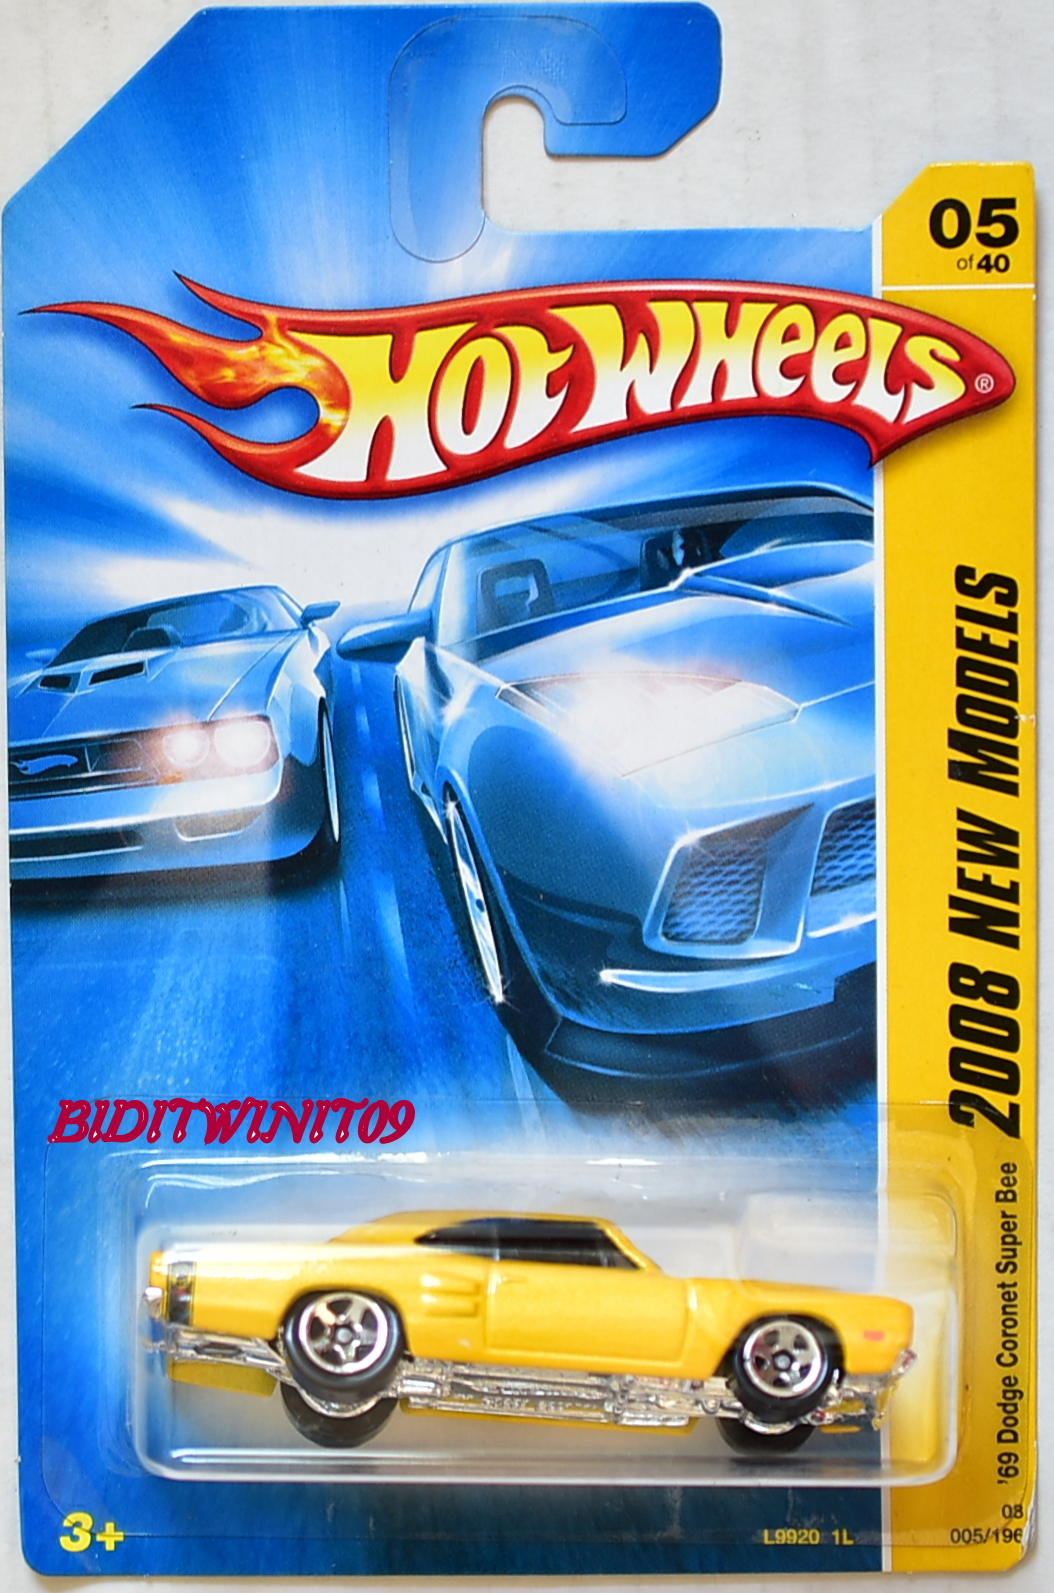 HOT WHEELS 2008 NEW MODELS '69 DODGE CORONET SUPER BEE YELLOW #05/40